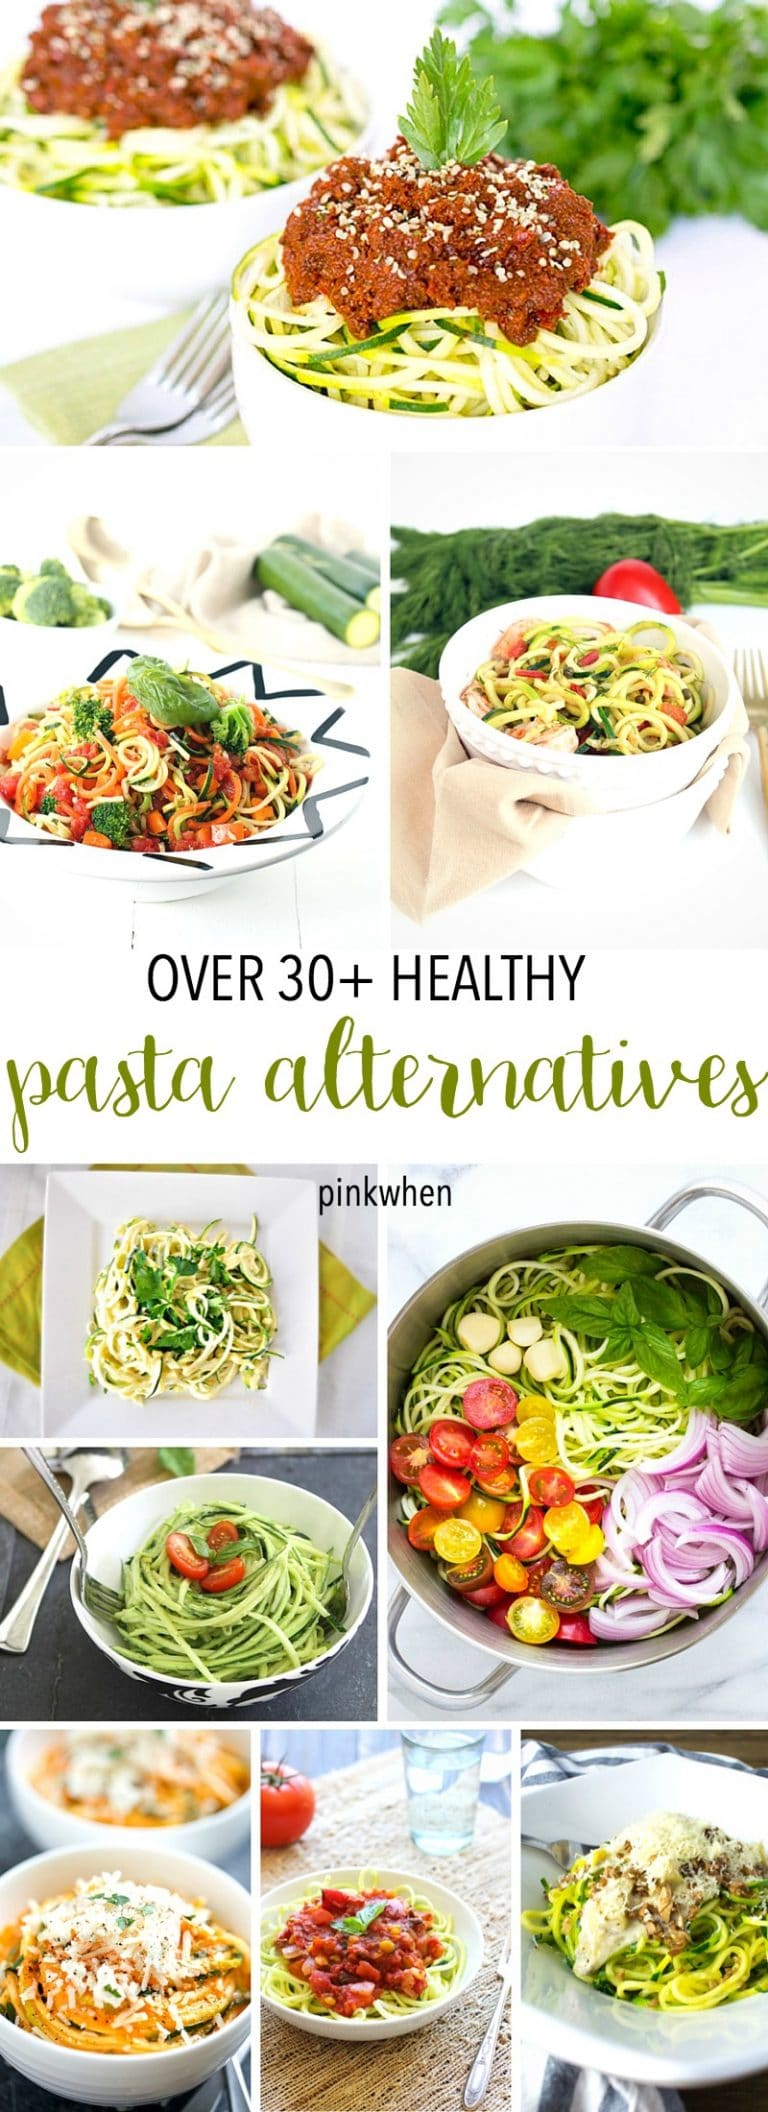 Over 30+ Low Carb and Healthy Pasta Alternatives